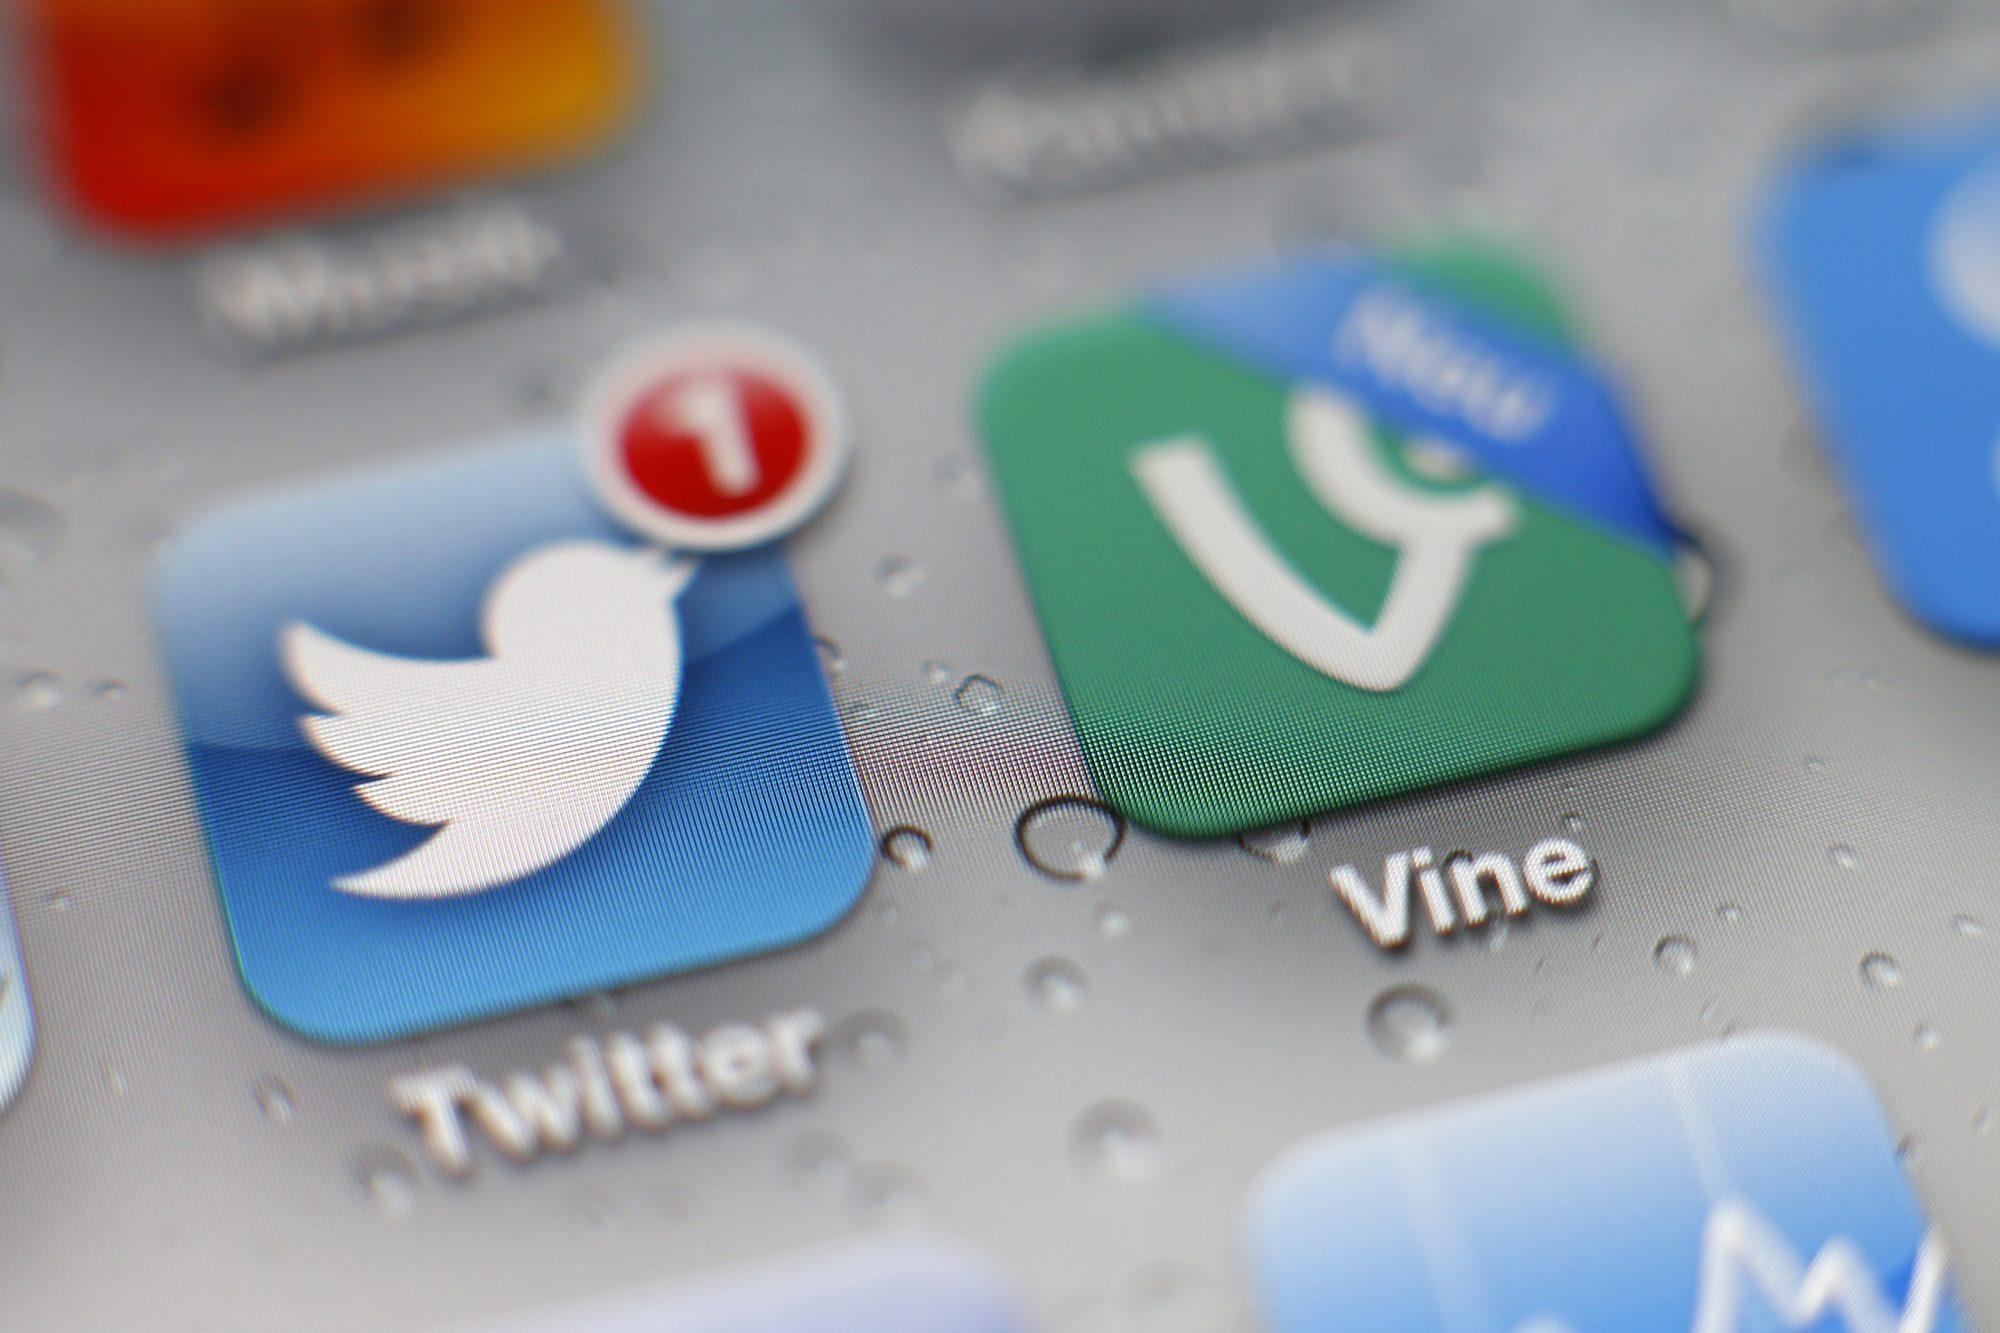 twitter and its old video app vine